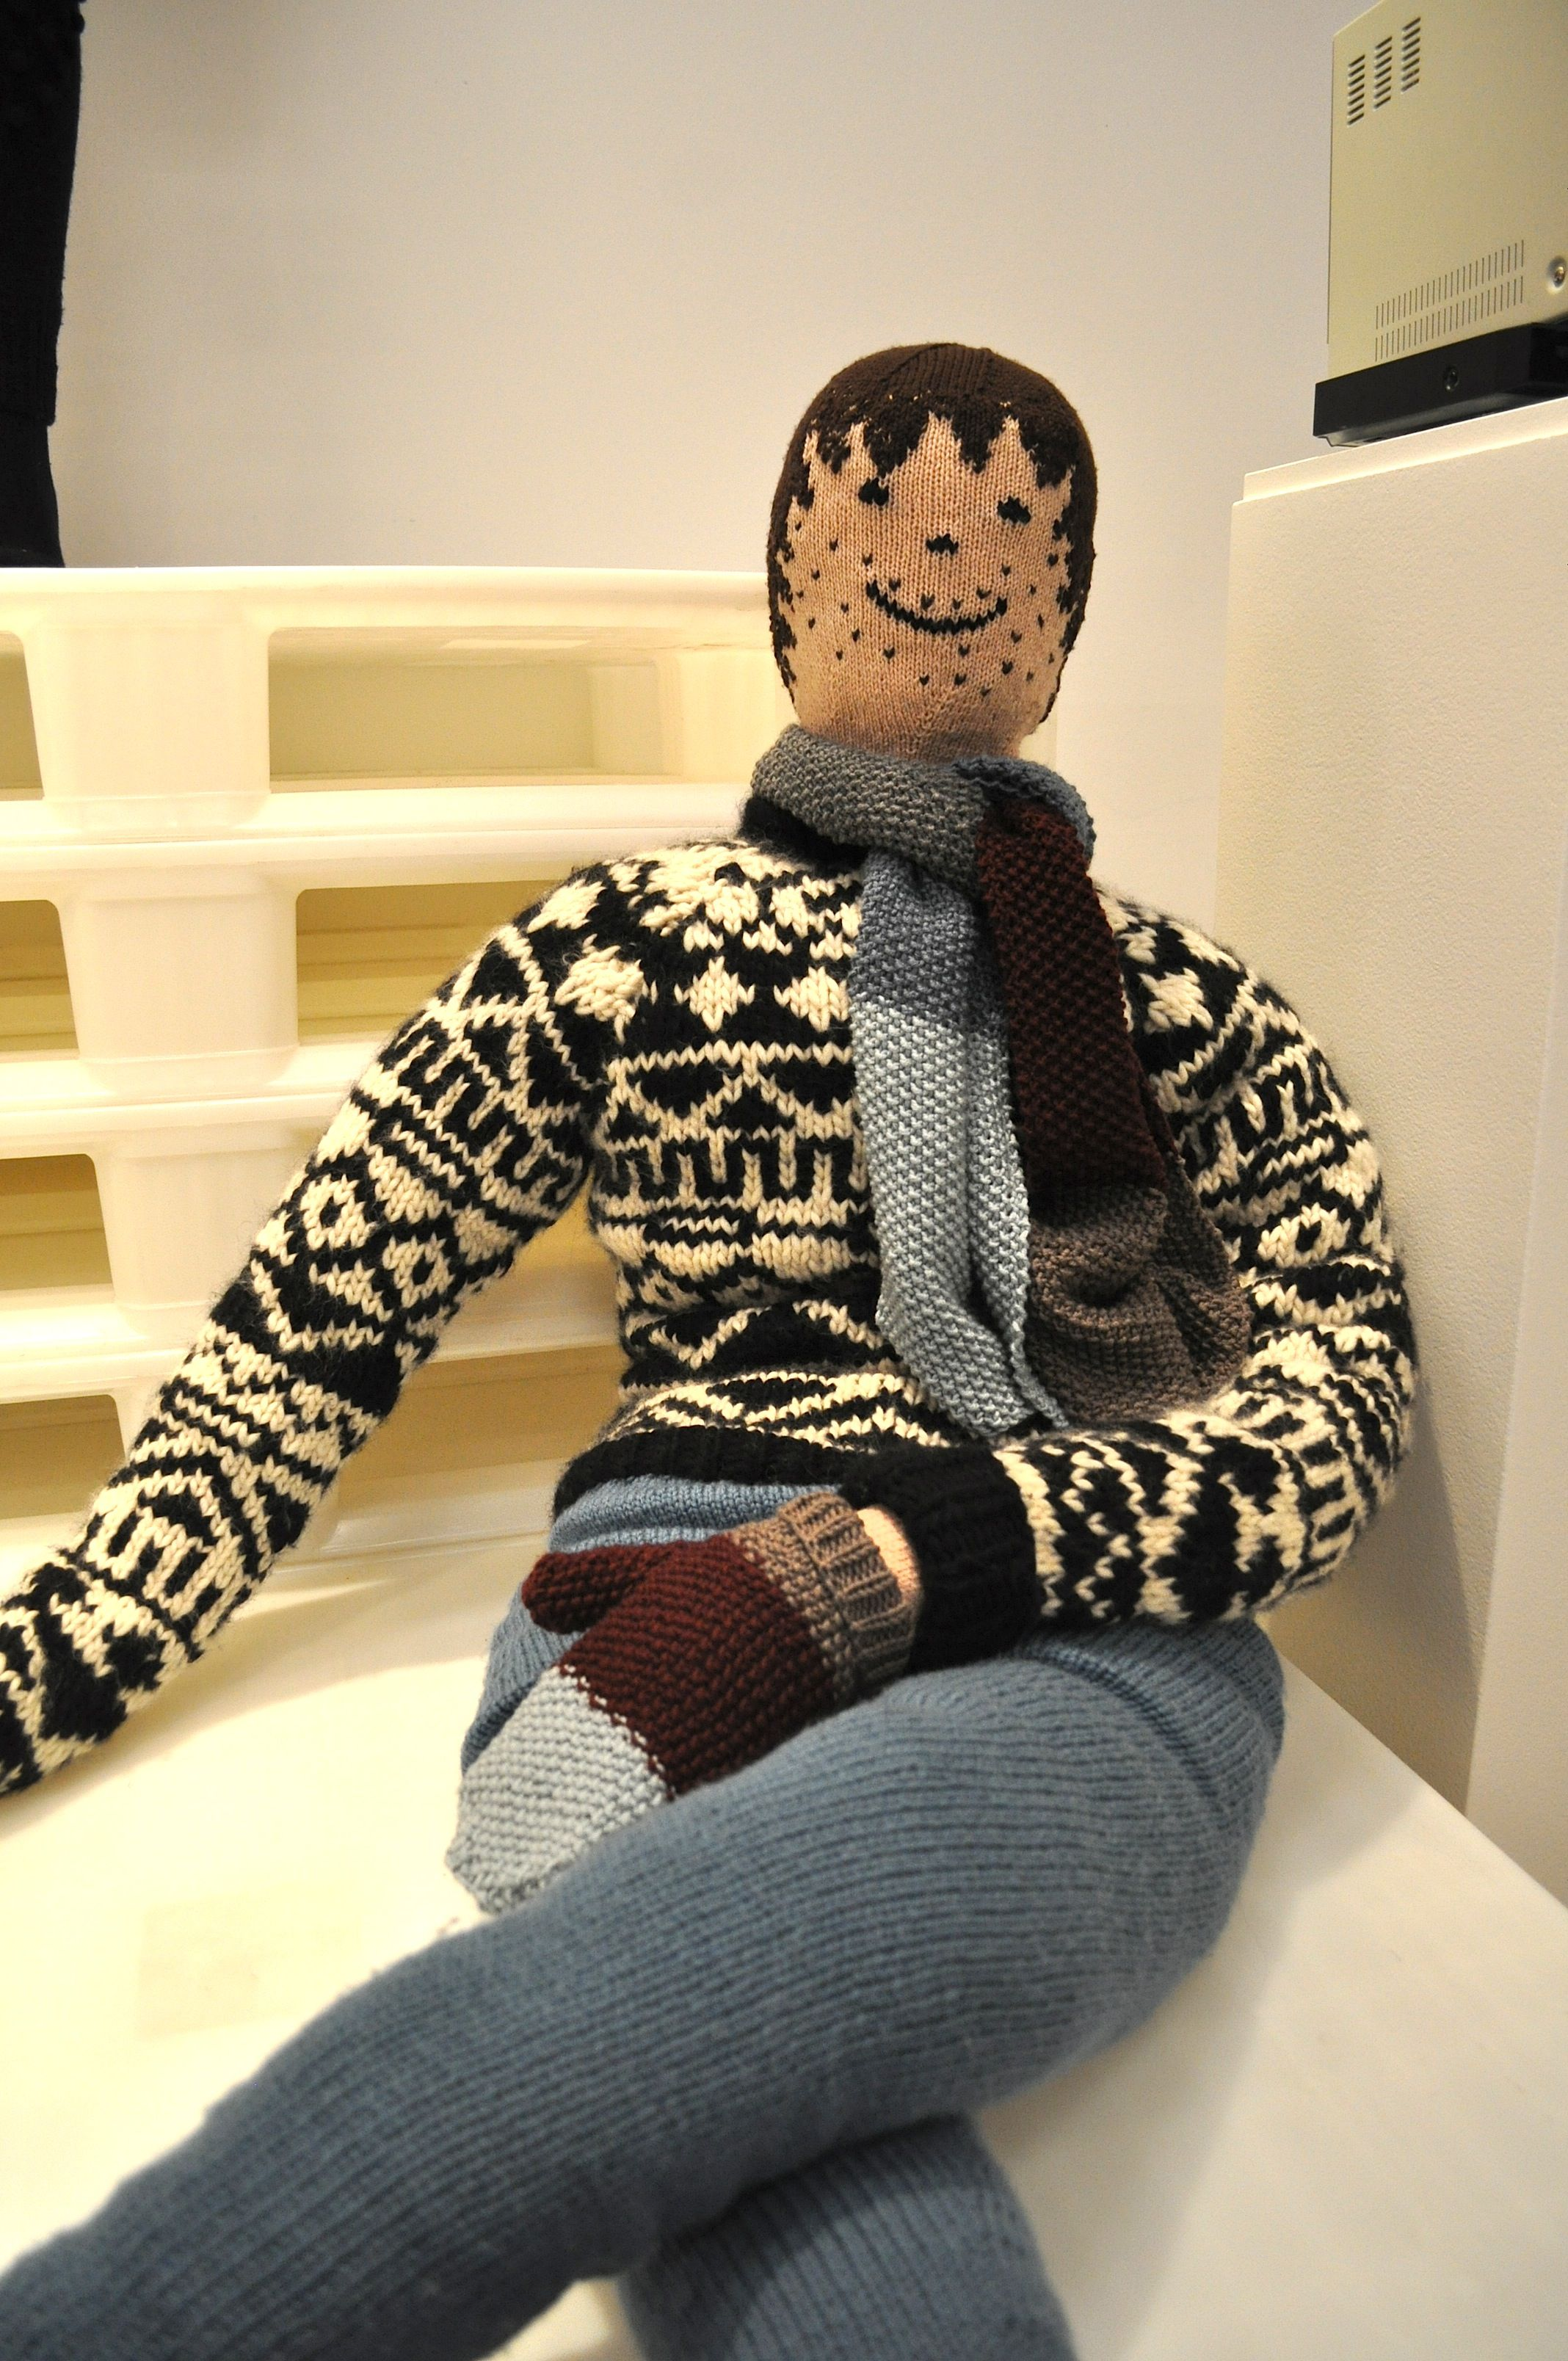 My Knitted Boyfriend  http://brankopopovic.blogspot.nl/2012/11/21-wool-masters-and-opening-wool-week.html